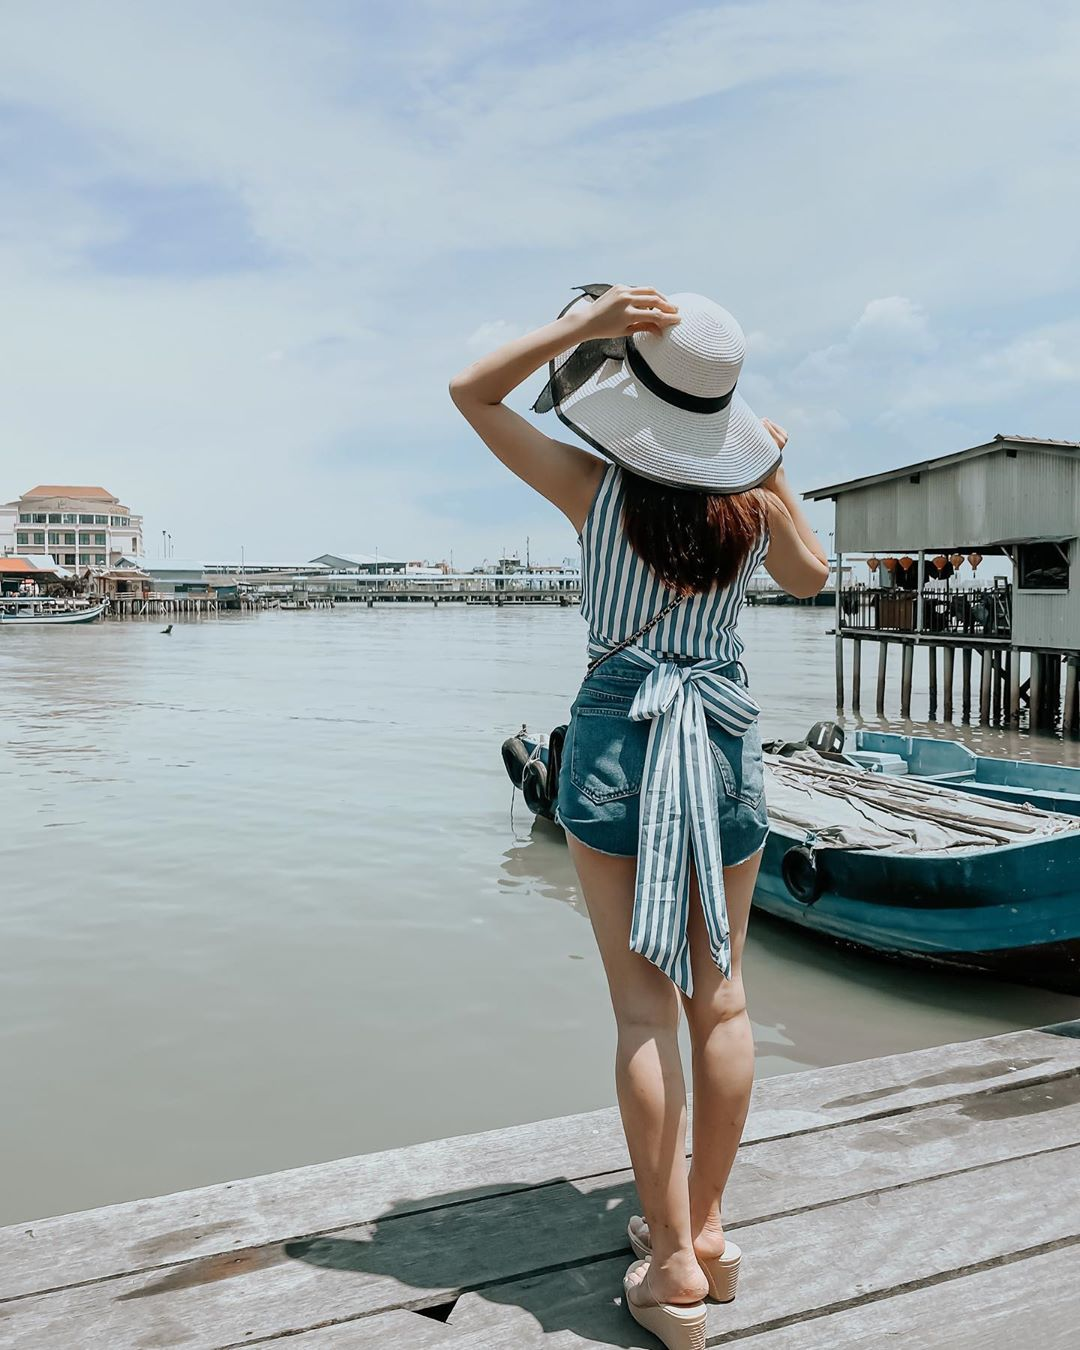 penang instagrammable place